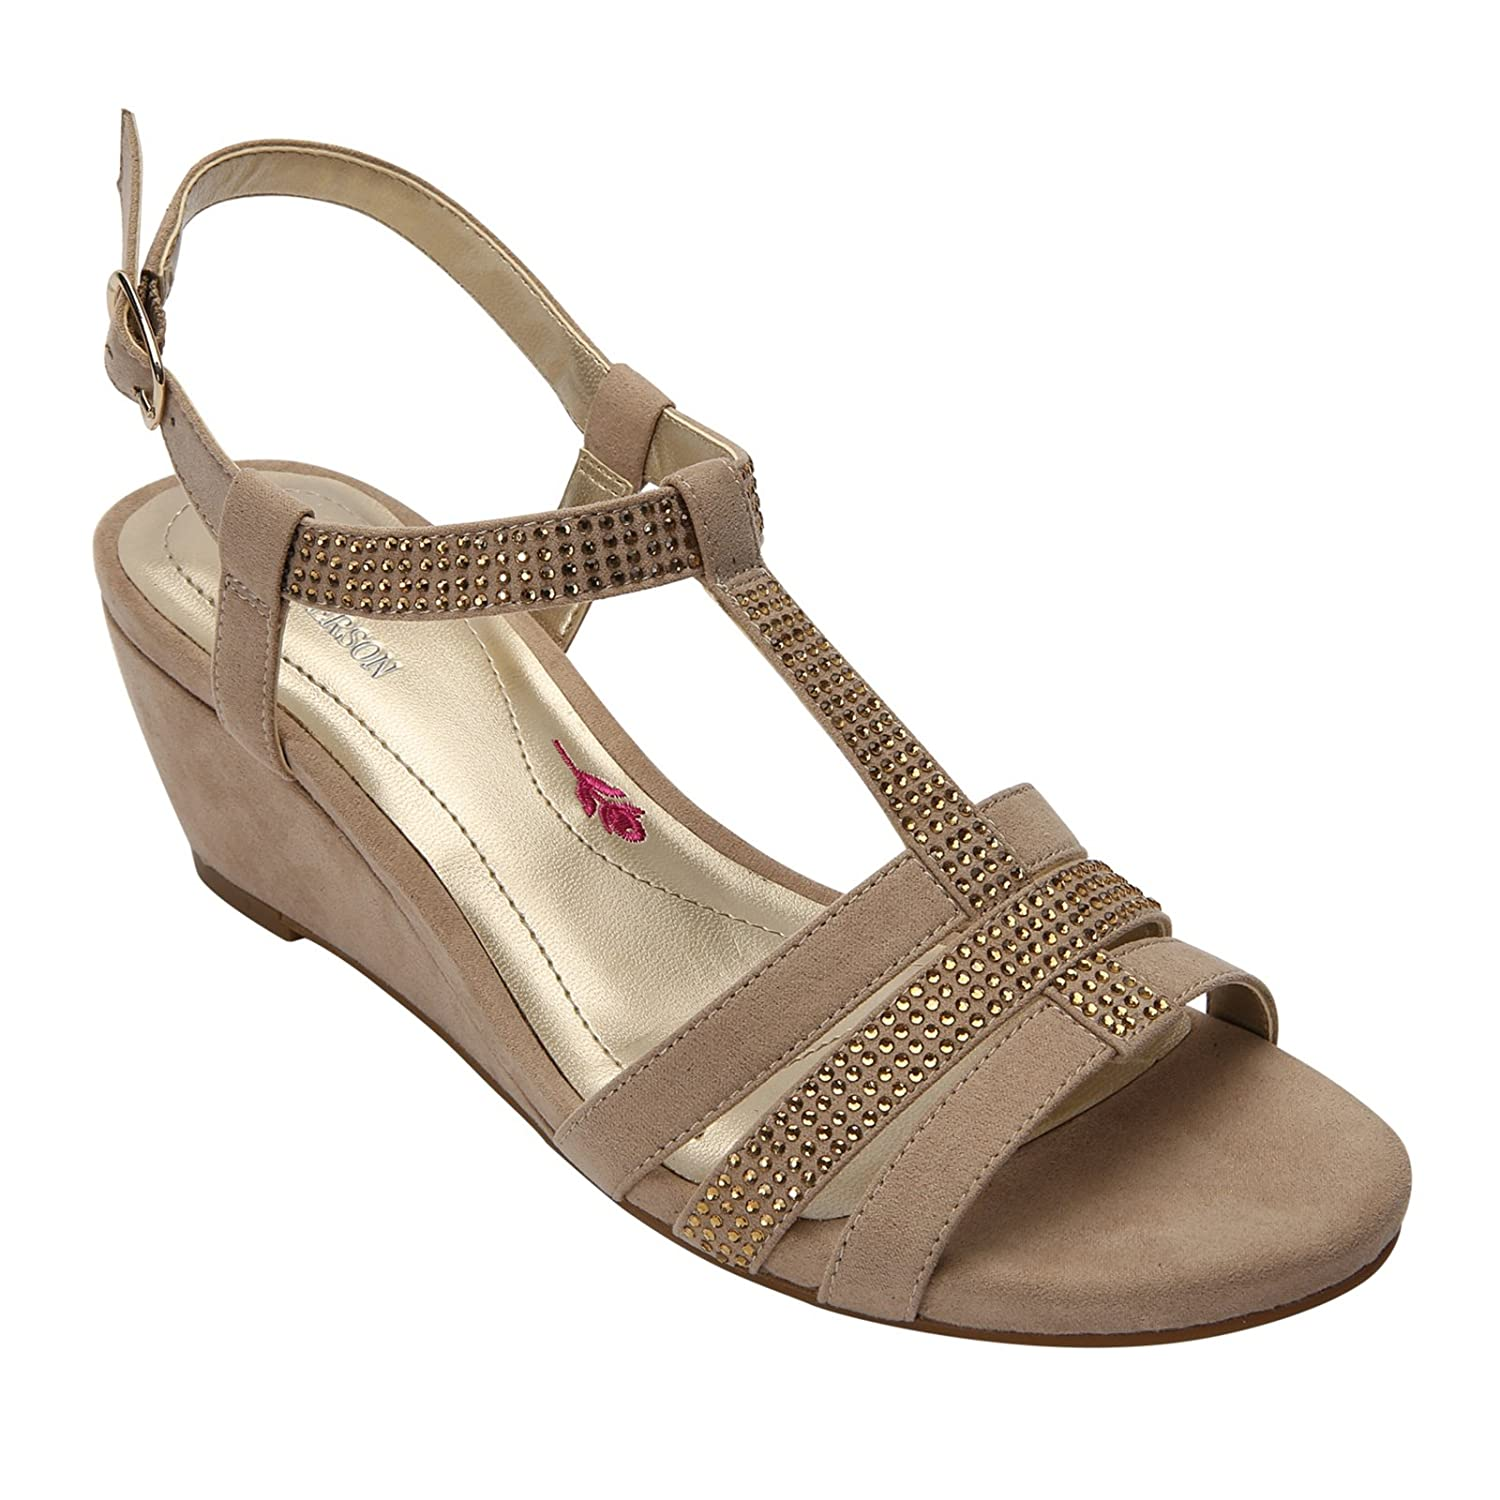 Ros Hommerson Women's Whitney Leather Sandals B01CQUEHC8 8.5 B(M) US|Sand